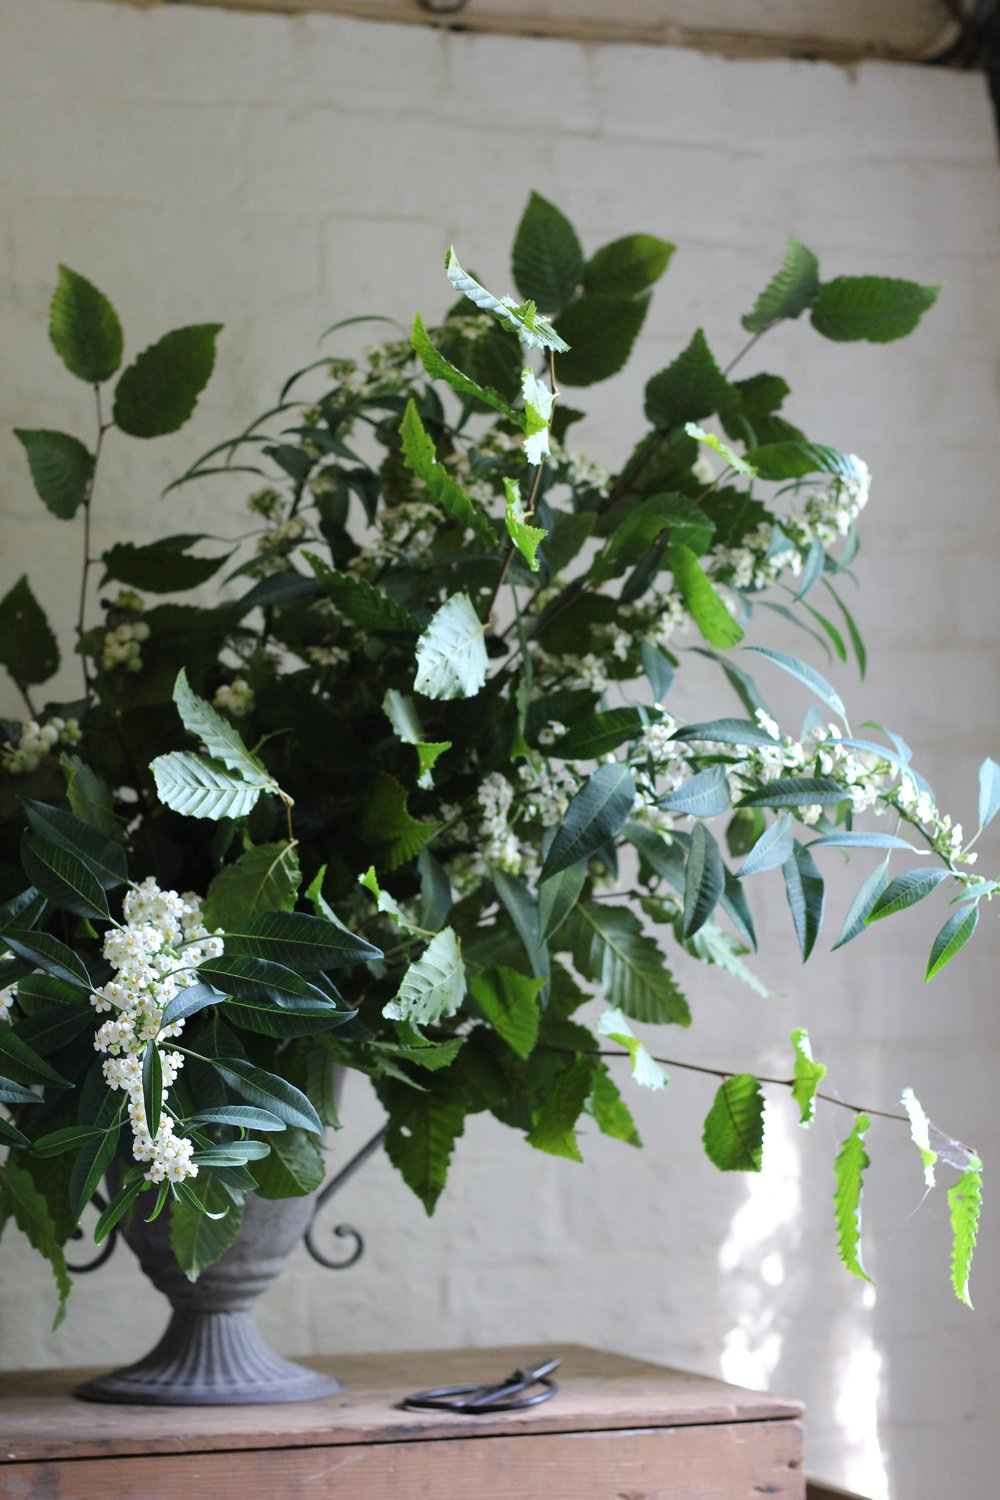 Jennifer Pinder Kent London florist flowers does a botanical themed green and white wedding at Jamies italain restaurant in London threadneedle street